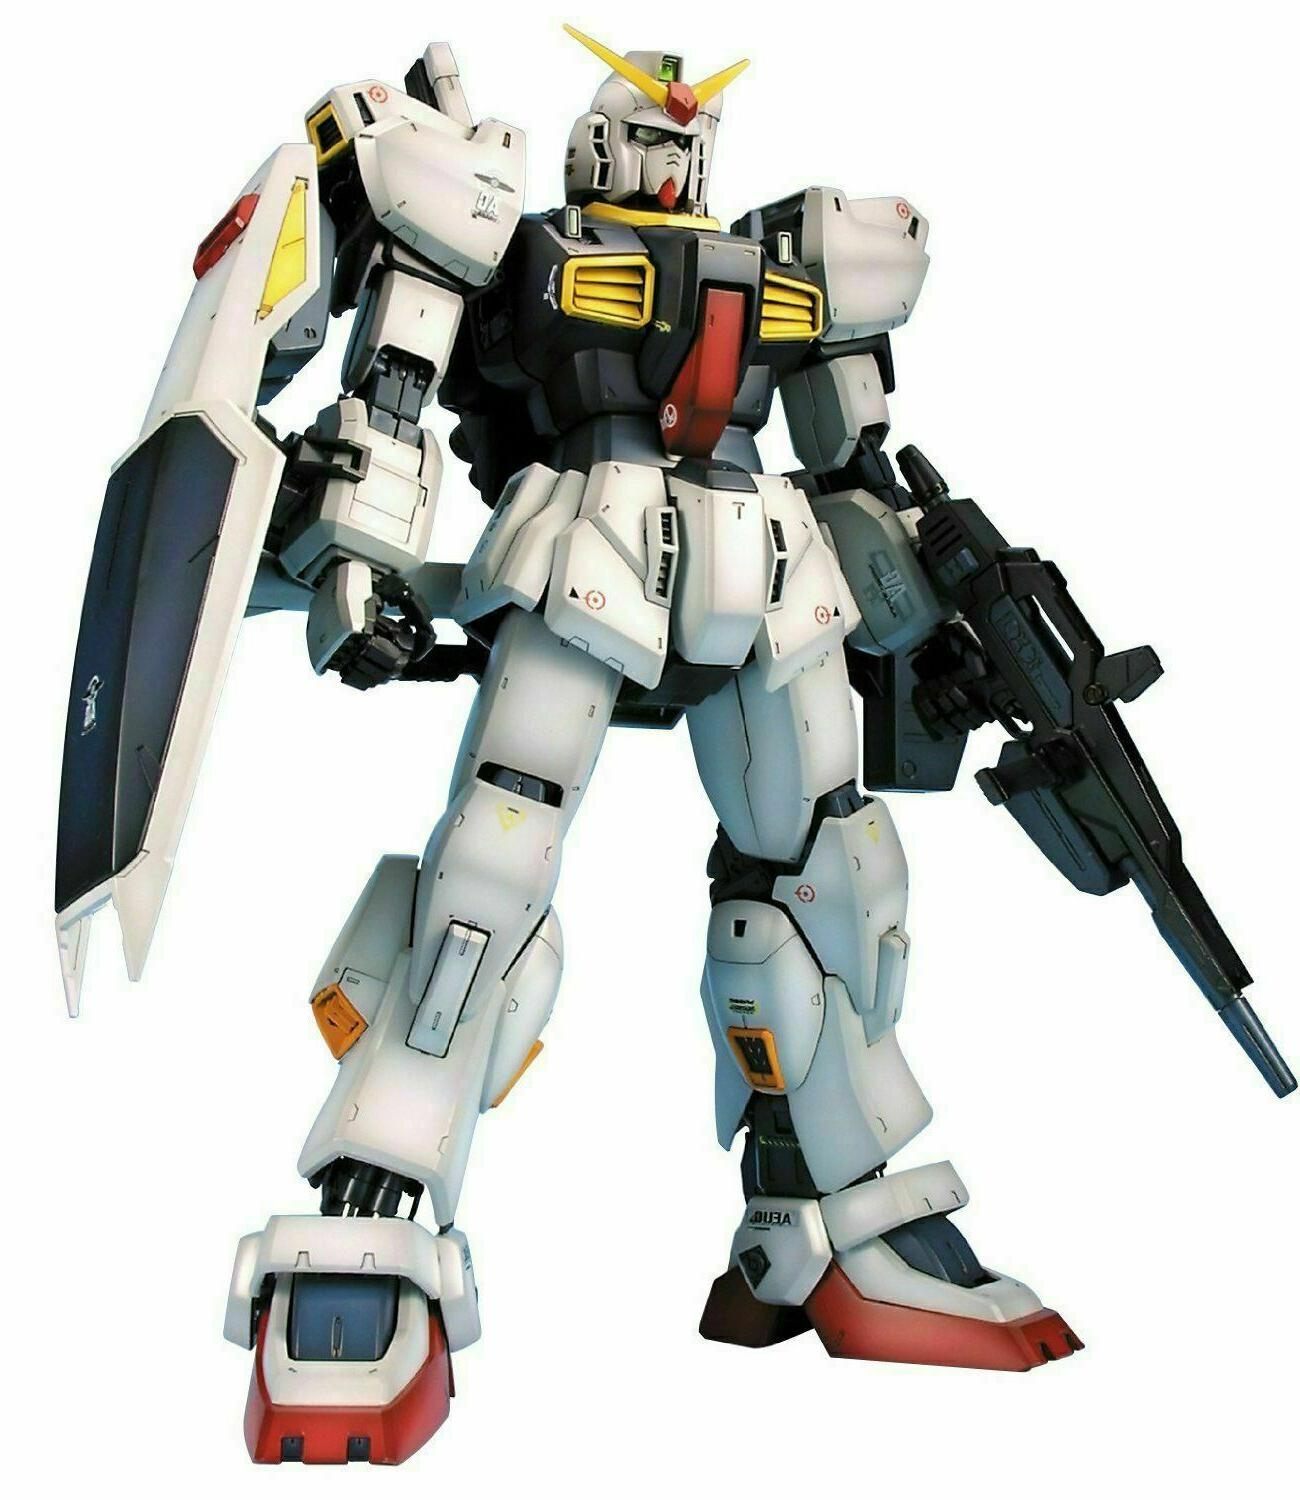 Bandai Hobby RX-178 PG 1/60 Model USA